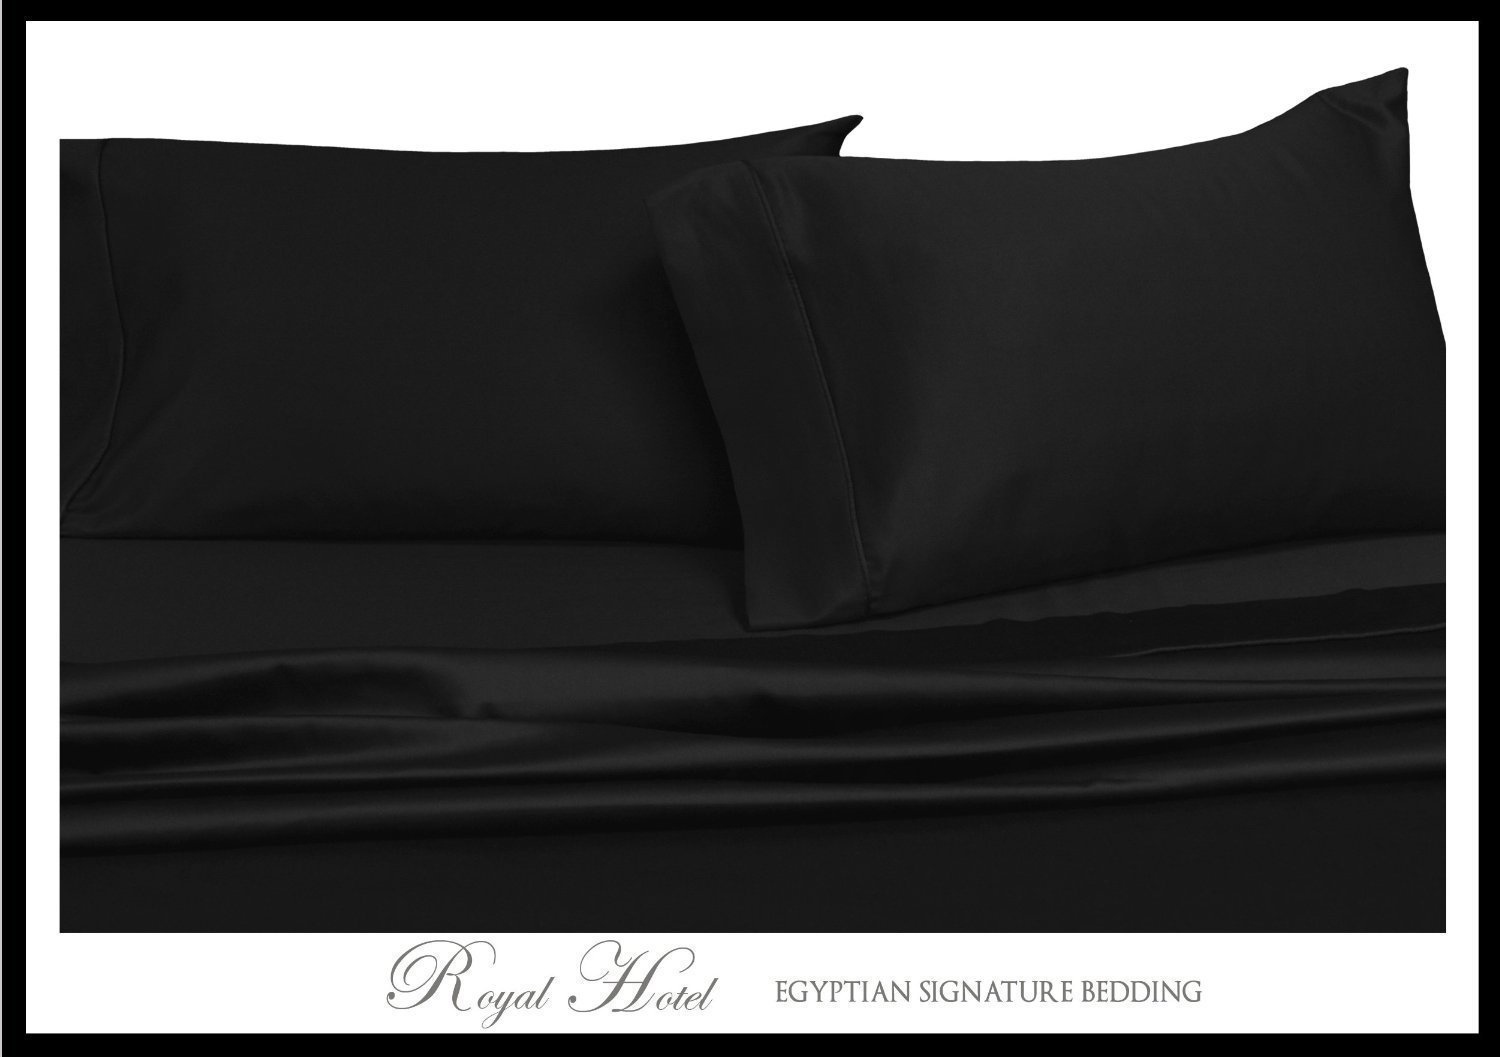 Solid Black California-King Size Sheets, 4PC Bed Sheet Set, 100% Cotton By Royal Hotel